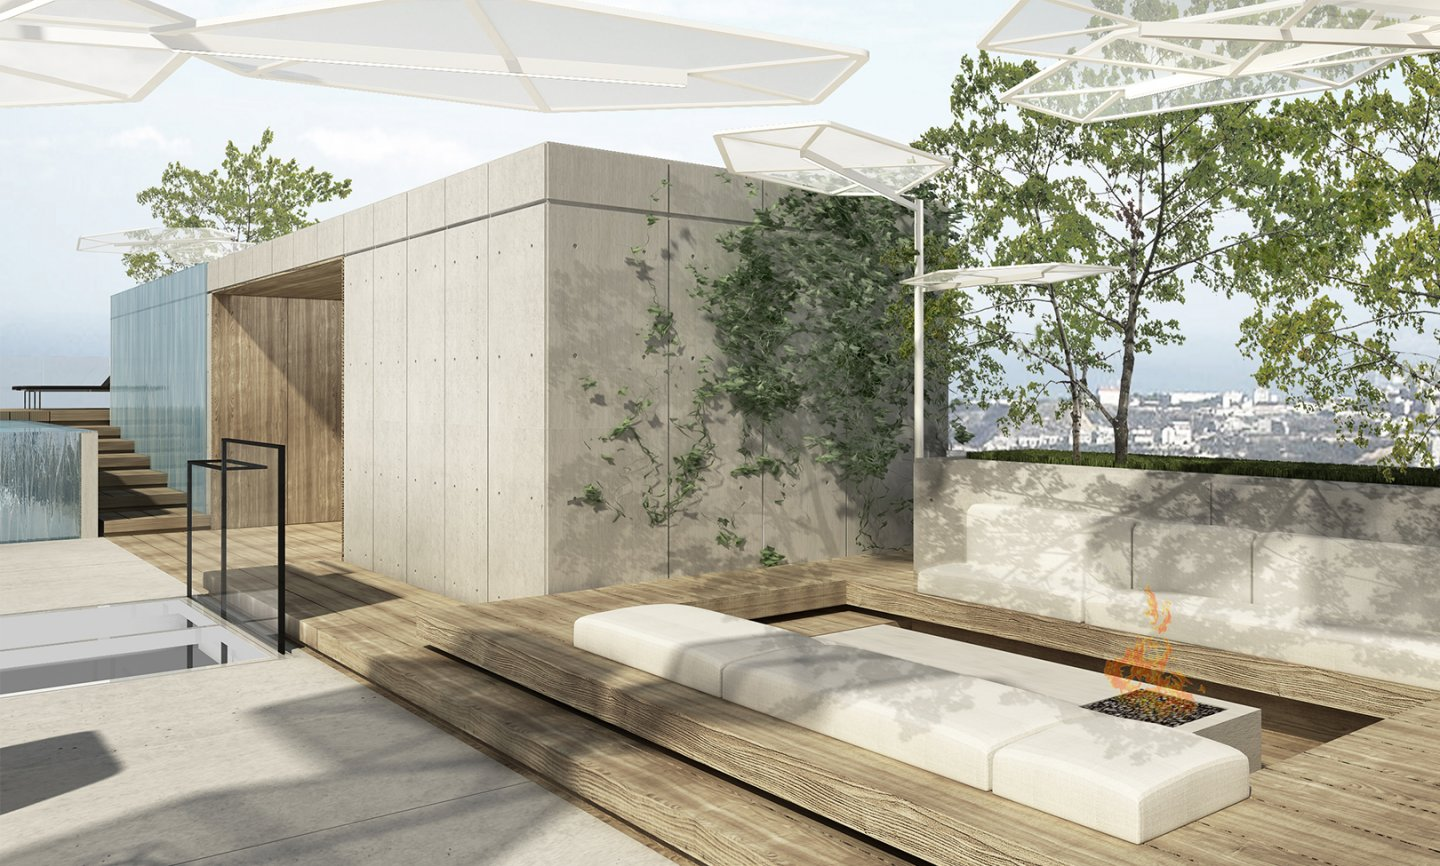 K.S Villa - project overview image